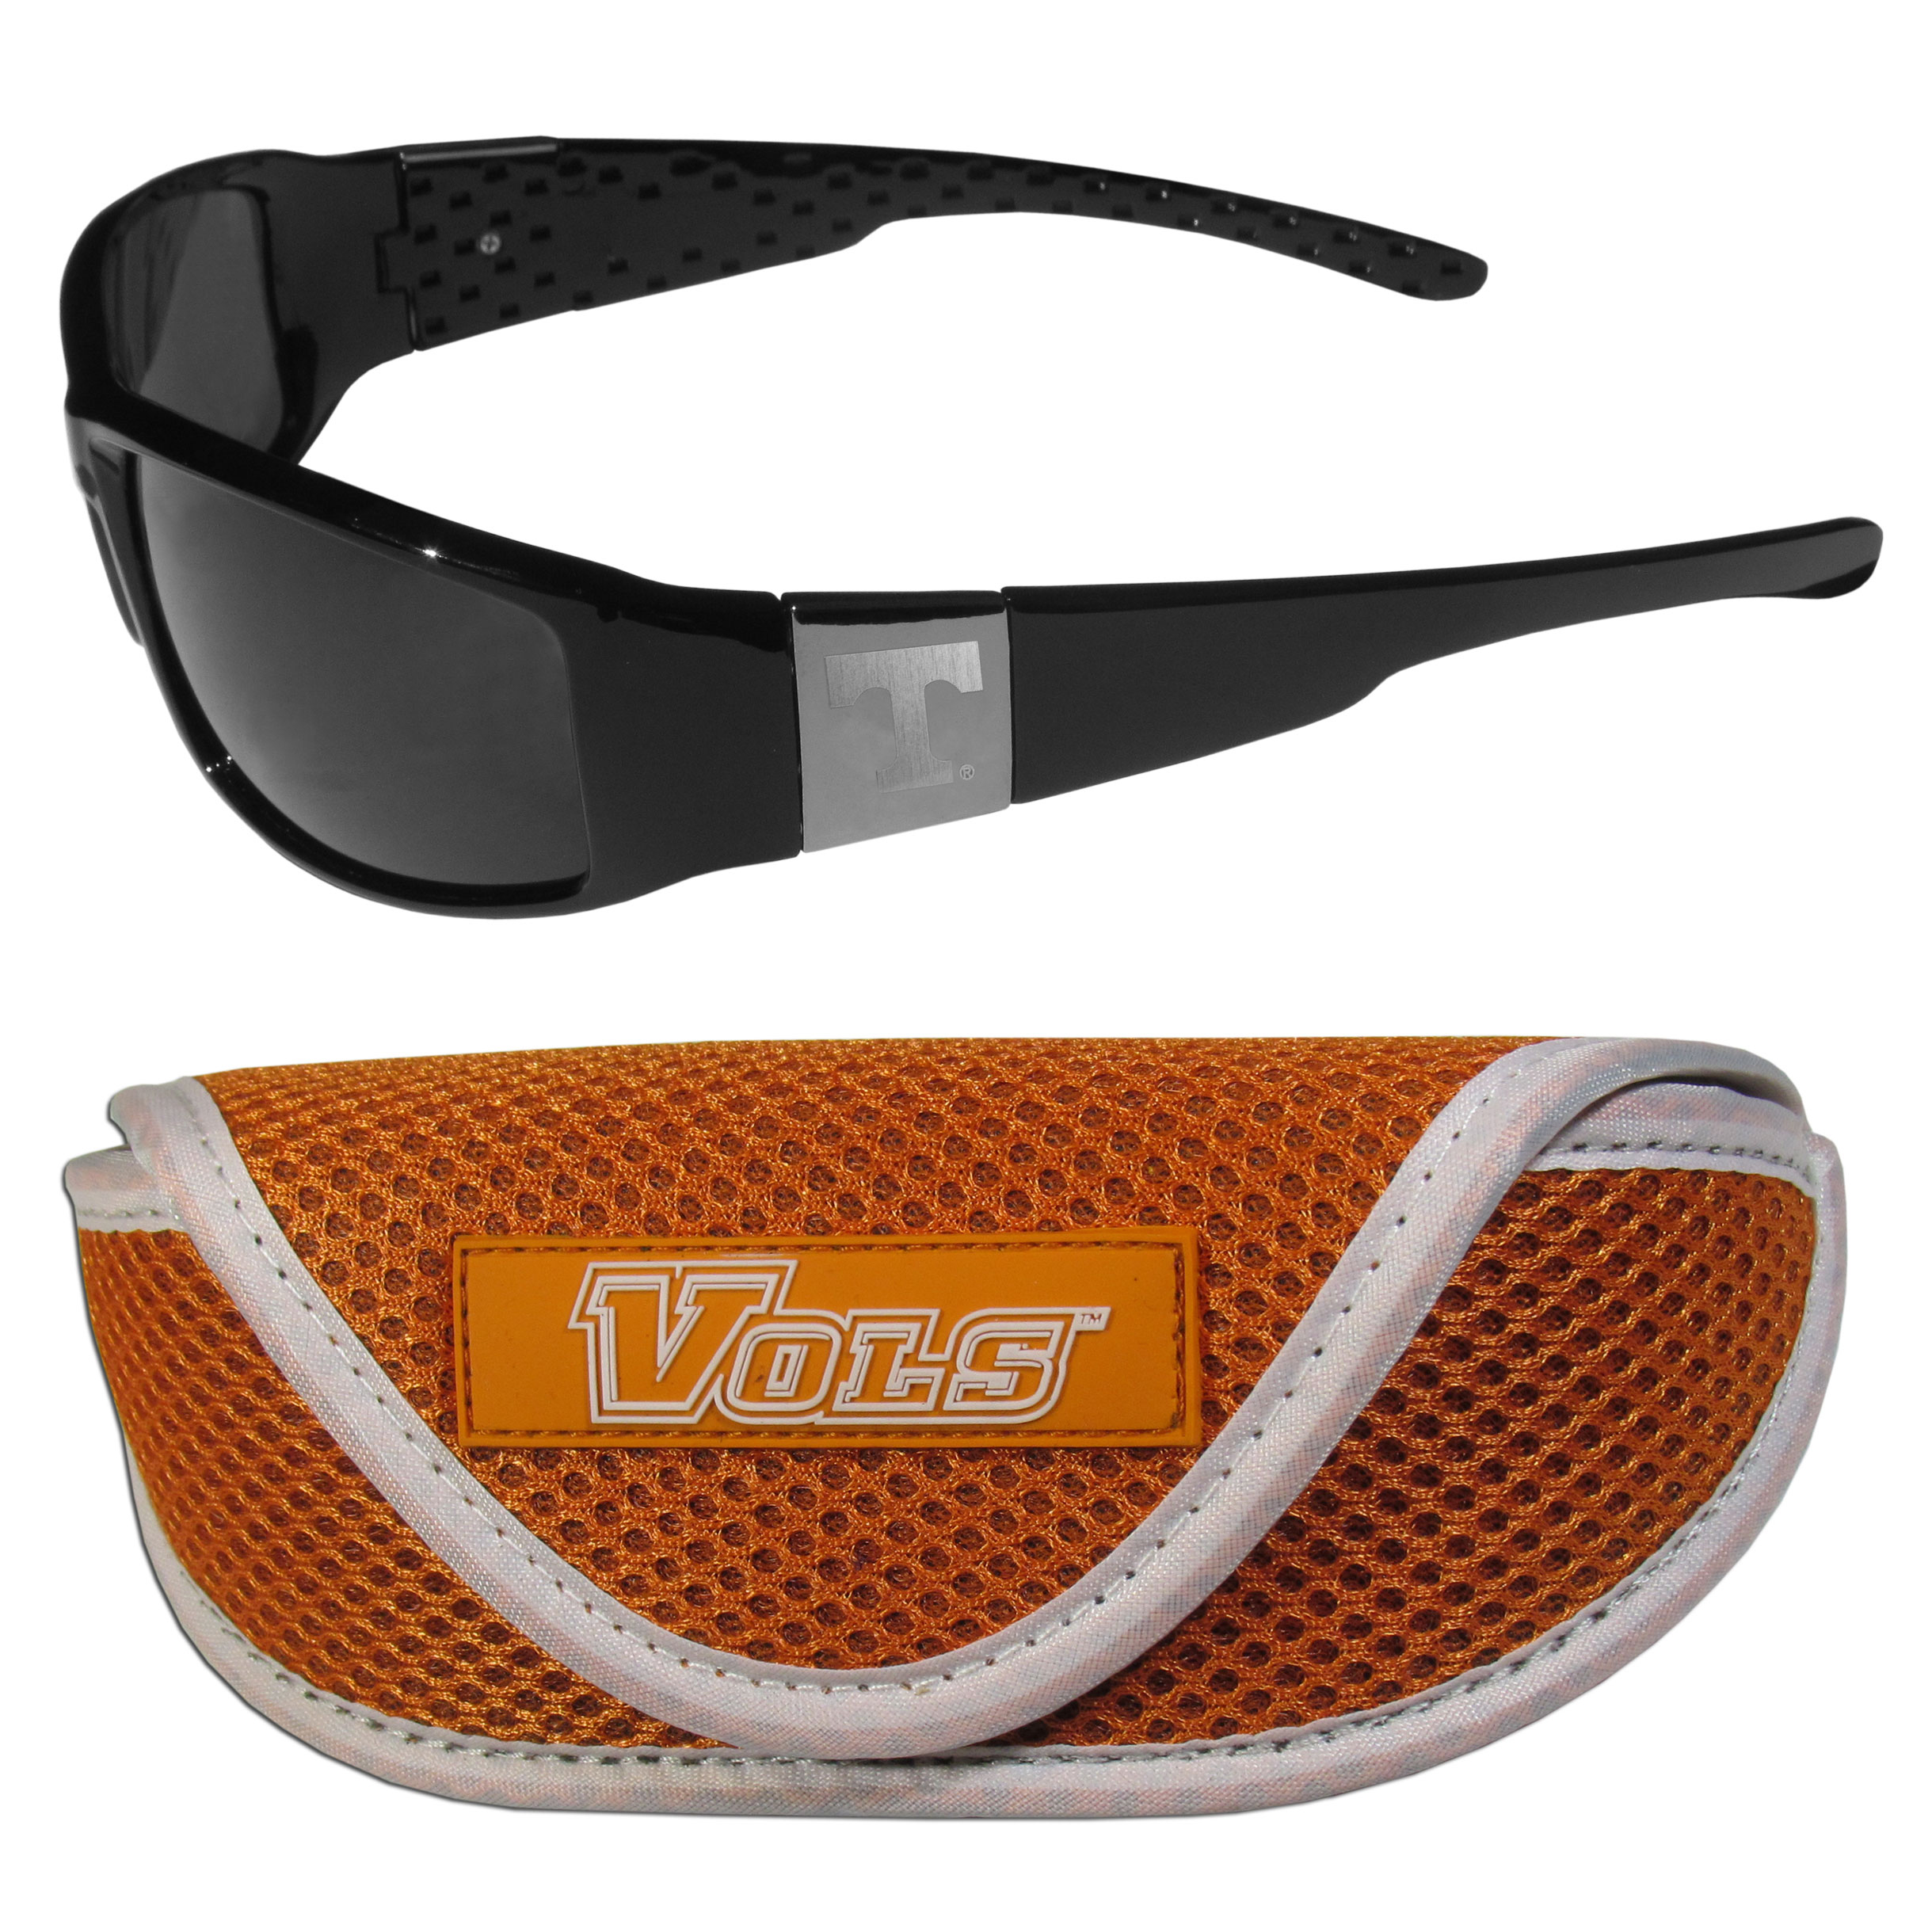 Tennessee Volunteers Chrome Wrap Sunglasses and Sport Carrying Case - These designer inspired frames have a sleek look in all black with high-polish chrome Tennessee Volunteers shields on each arm with an etched logo. The shades are perfect any outdoor activity like; golfing, driving, hiking, fishing or cheering on the team at a tailgating event or an at home game day BBQ with a lens rating of 100% UVA/UVB for maximum UV protection. The high-quality frames are as durable as they are fashionable and with their classic look they are perfect fan accessory that can be worn everyday for every occasion. The shades come with a zippered hard shell case to keep your sunglasses safe.